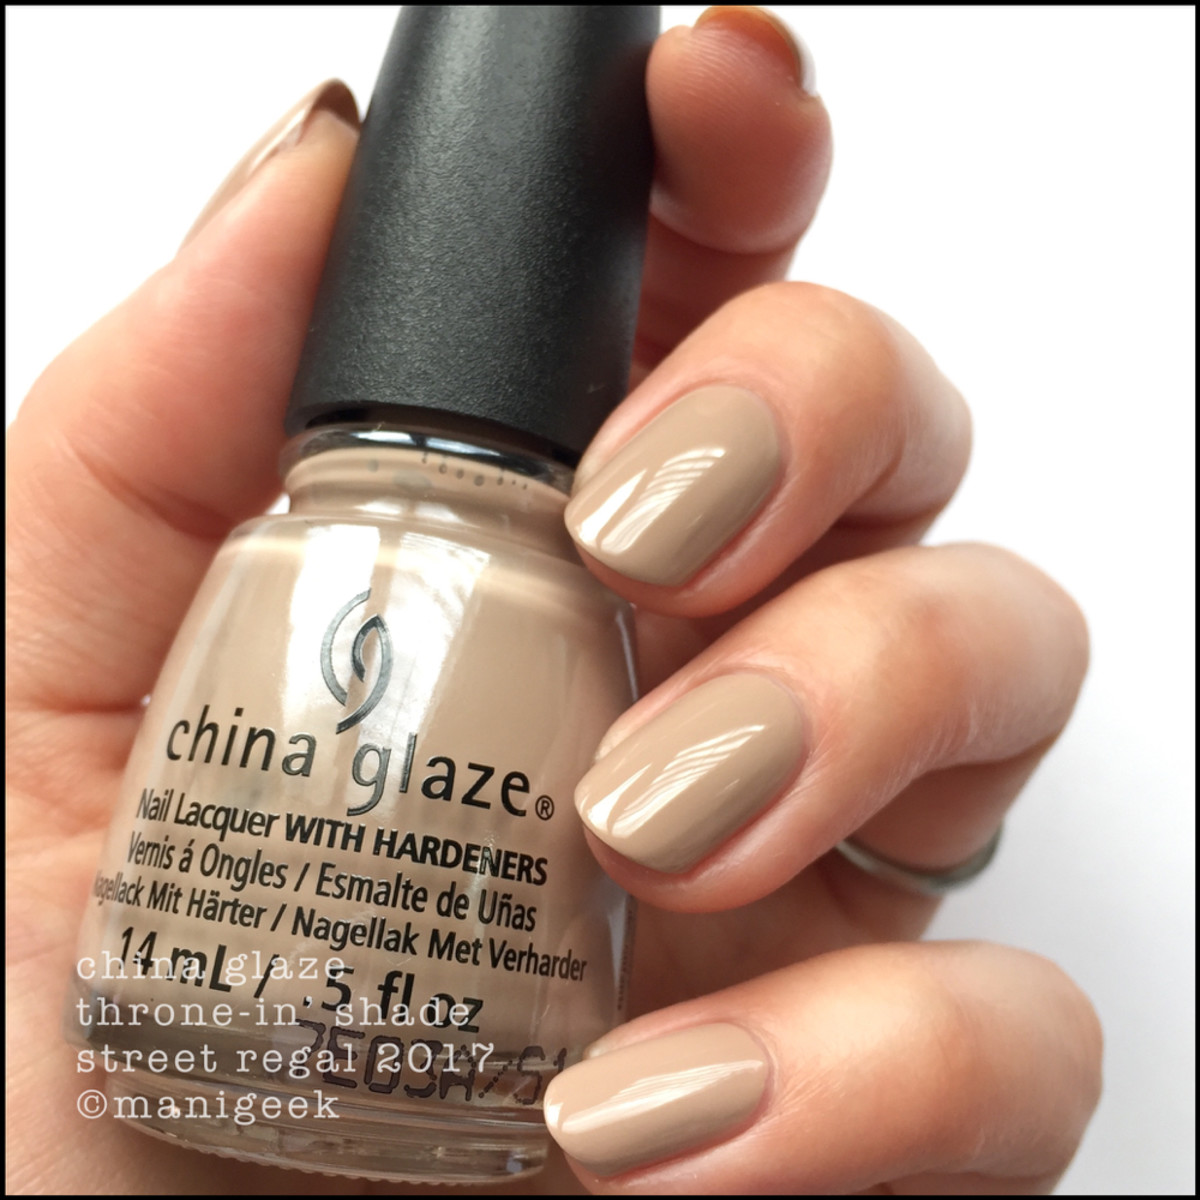 China Glaze Throne-in' Shade - Street Regal Collection Fall 2017